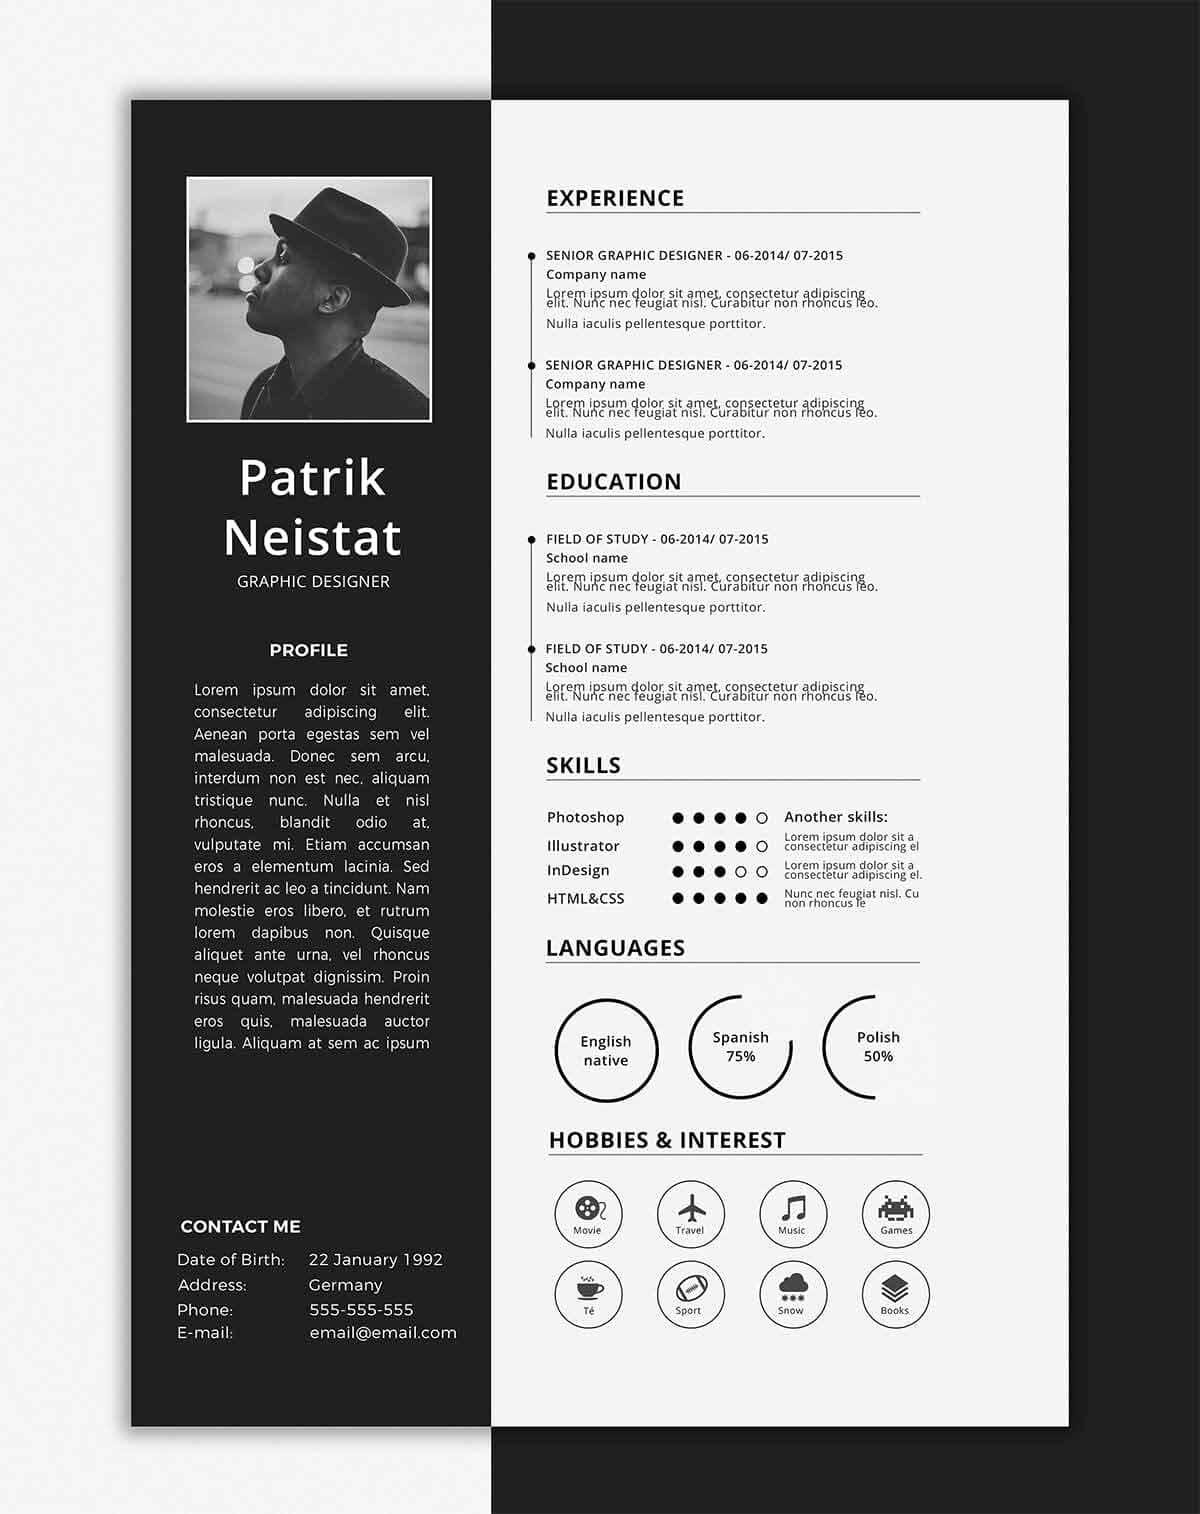 One Page Resume Examples Fresh E Page Resume Templates 15 Examples to Download and Use now